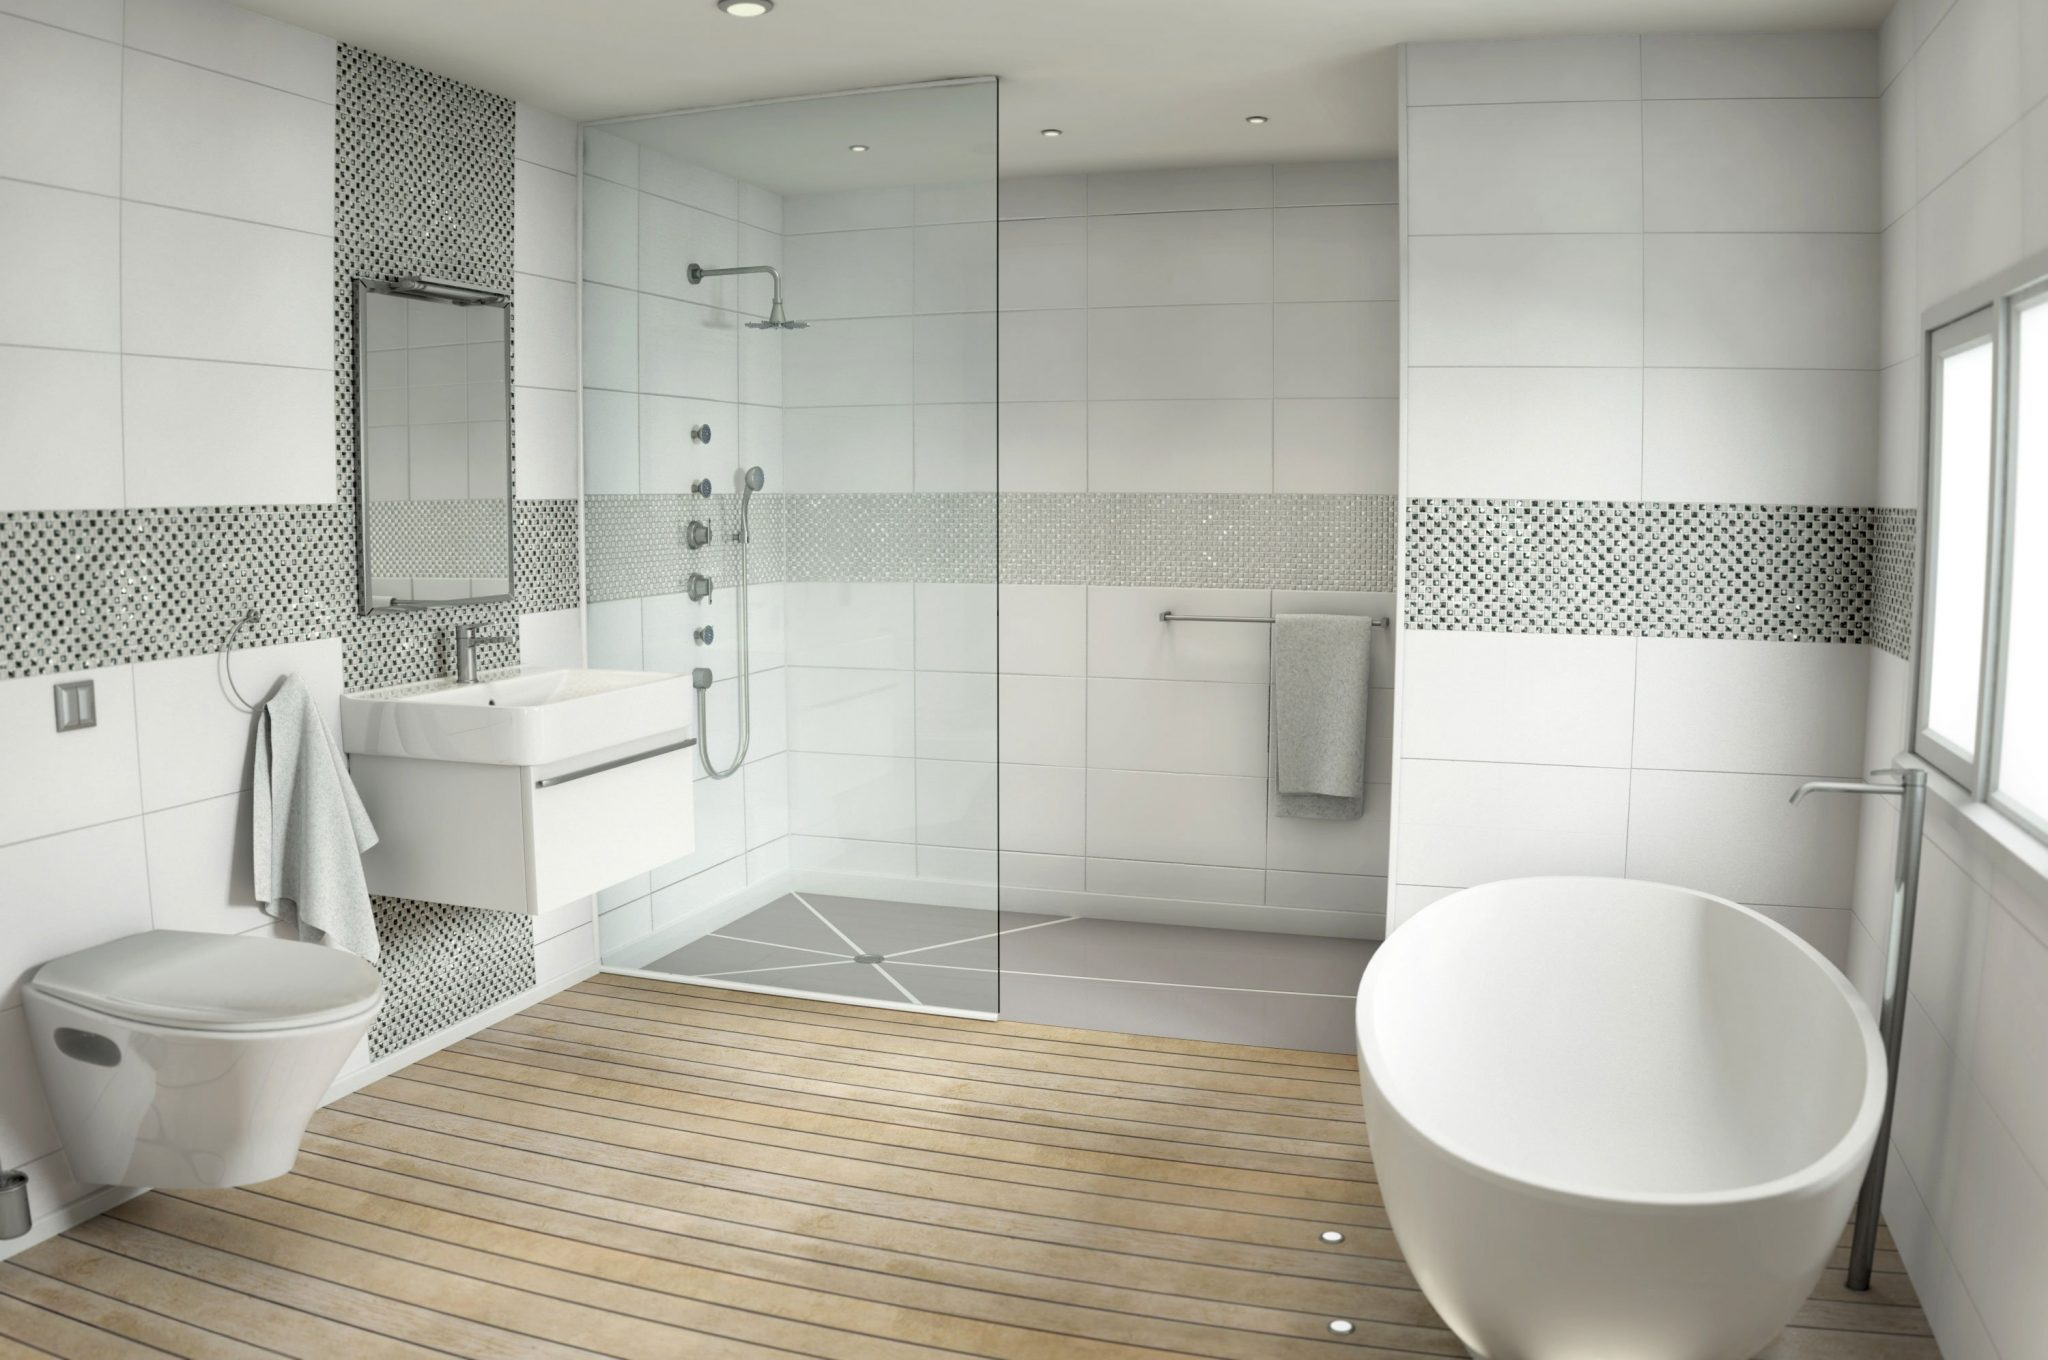 24 Mosaic Bathroom Ideas Designs: White Sparkle Mosaic Tiles